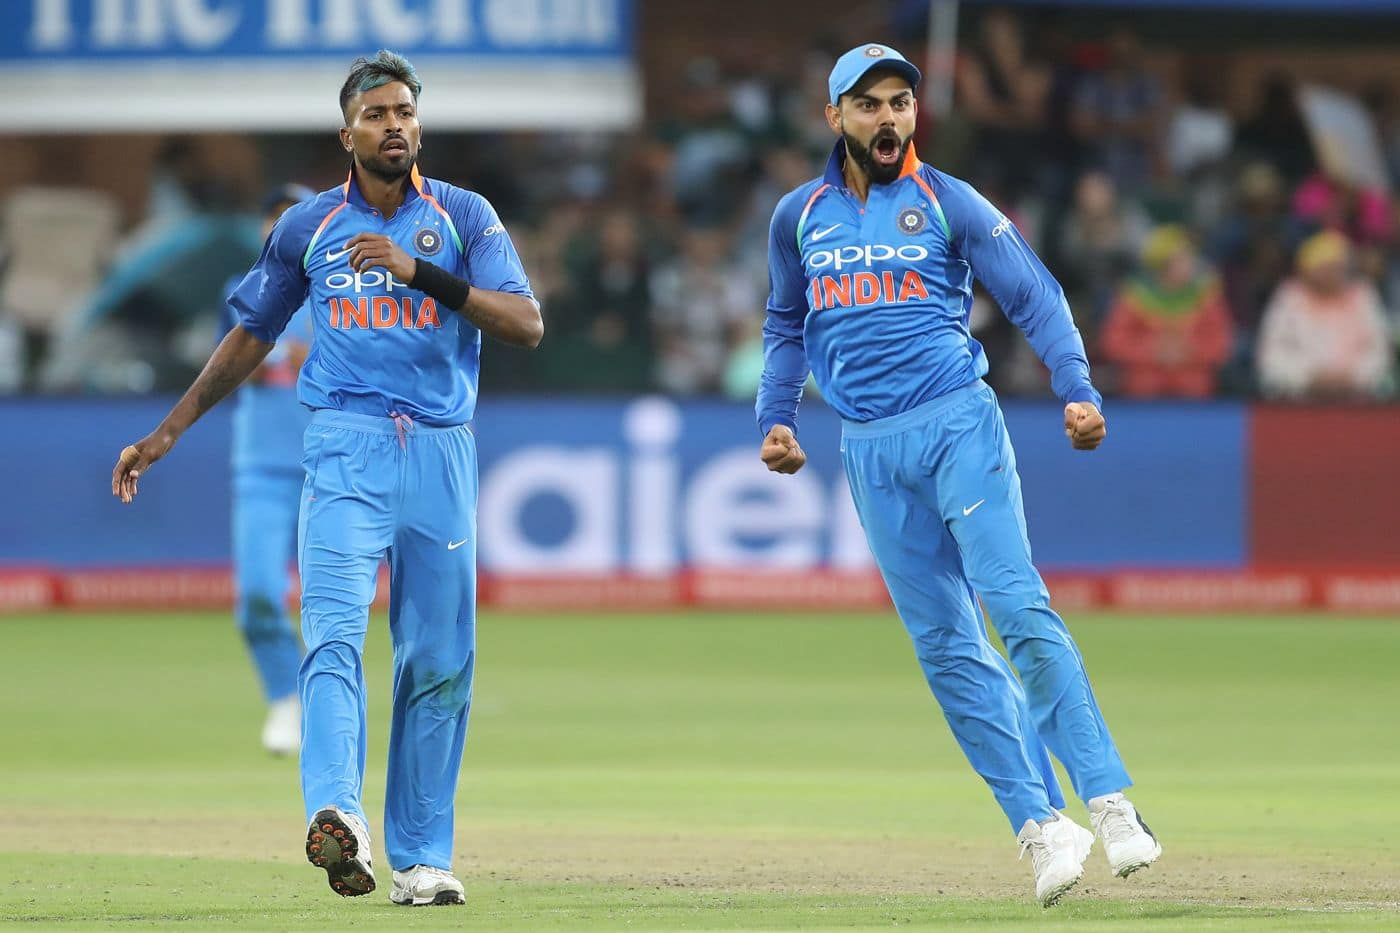 Hardik Pandya's absence has forced Virat Kohli to look at other options.